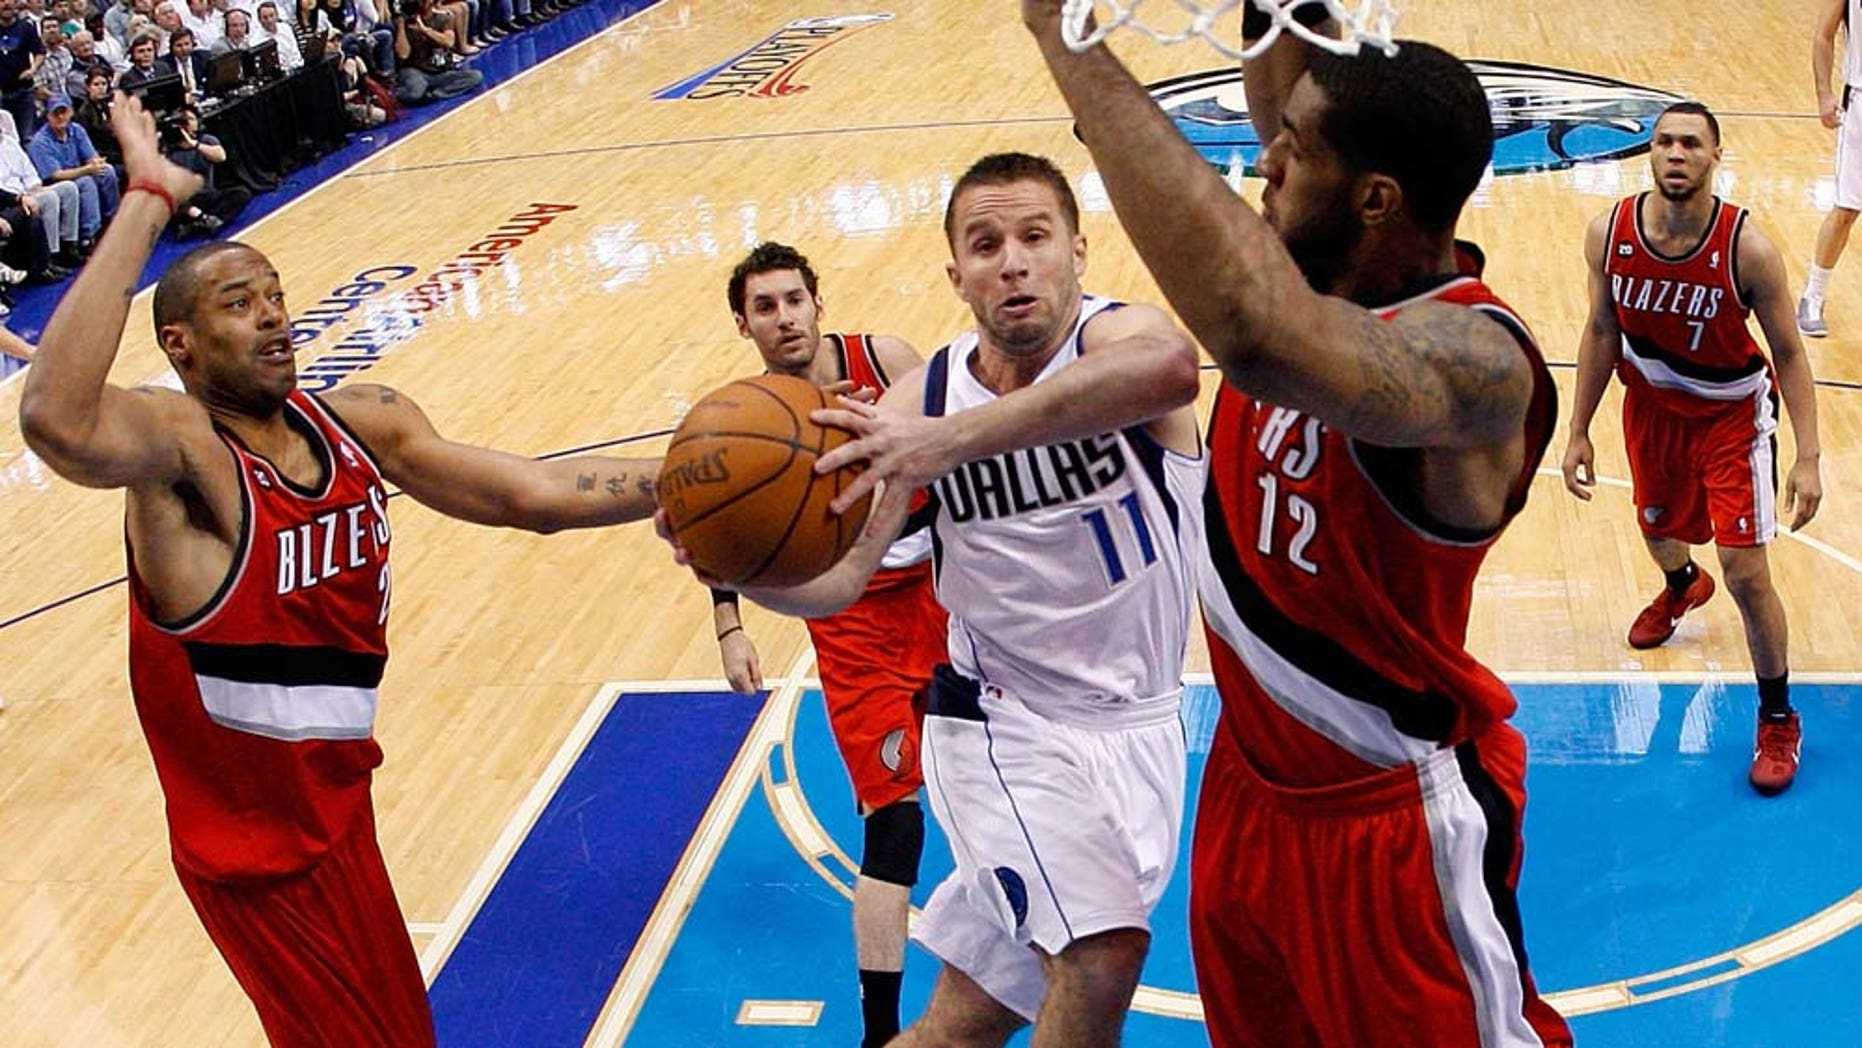 DALLAS, TX - APRIL 19:  Guard Jose Juan Barea #11 of the Dallas Mavericks takes a shot against LaMarcus Aldridge #12 of the Portland Trail Blazers in Game Two of the Western Conference Quarterfinals during the 2011 NBA Playoffs on April 19, 2011 at American Airlines Center in Dallas, Texas.  NOTE TO USER: User expressly acknowledges and agrees that, by downloading and or using this photograph, User is consenting to the terms and conditions of the Getty Images License Agreement.  (Photo by Ronald Martinez/Getty Images)